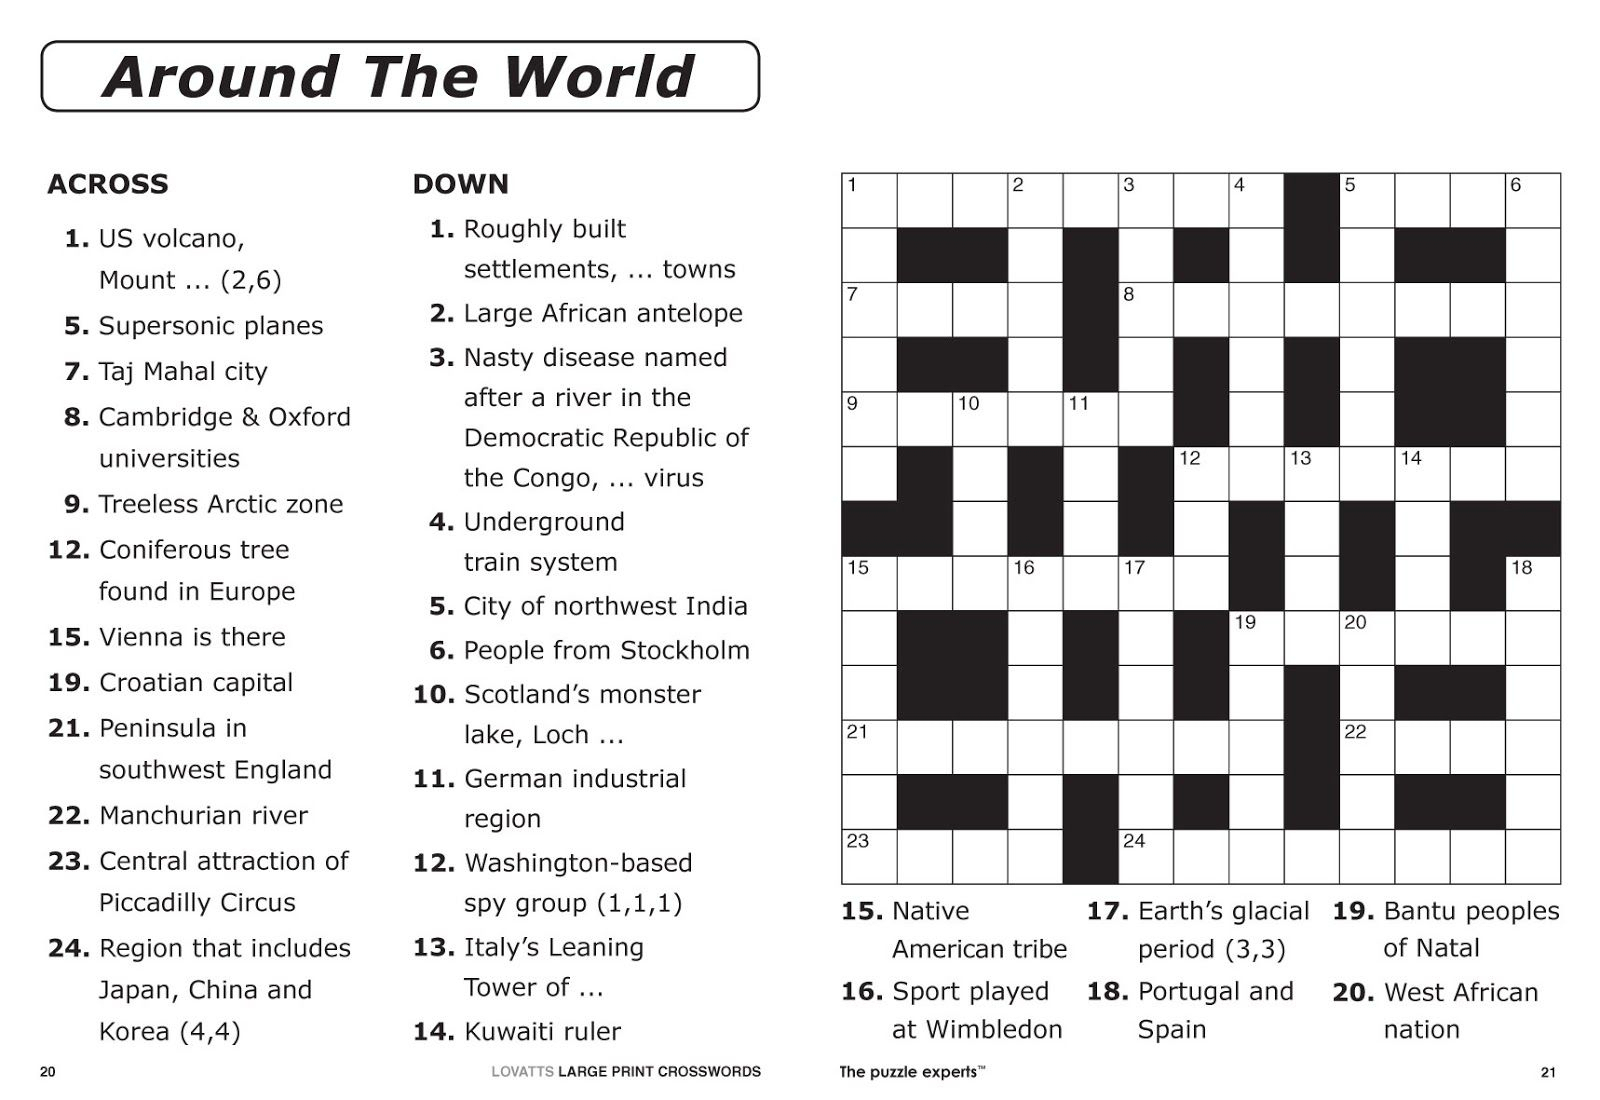 Free Printable Large Print Crossword Puzzles | M3U8 - Printable Crossword Puzzle With Answer Key